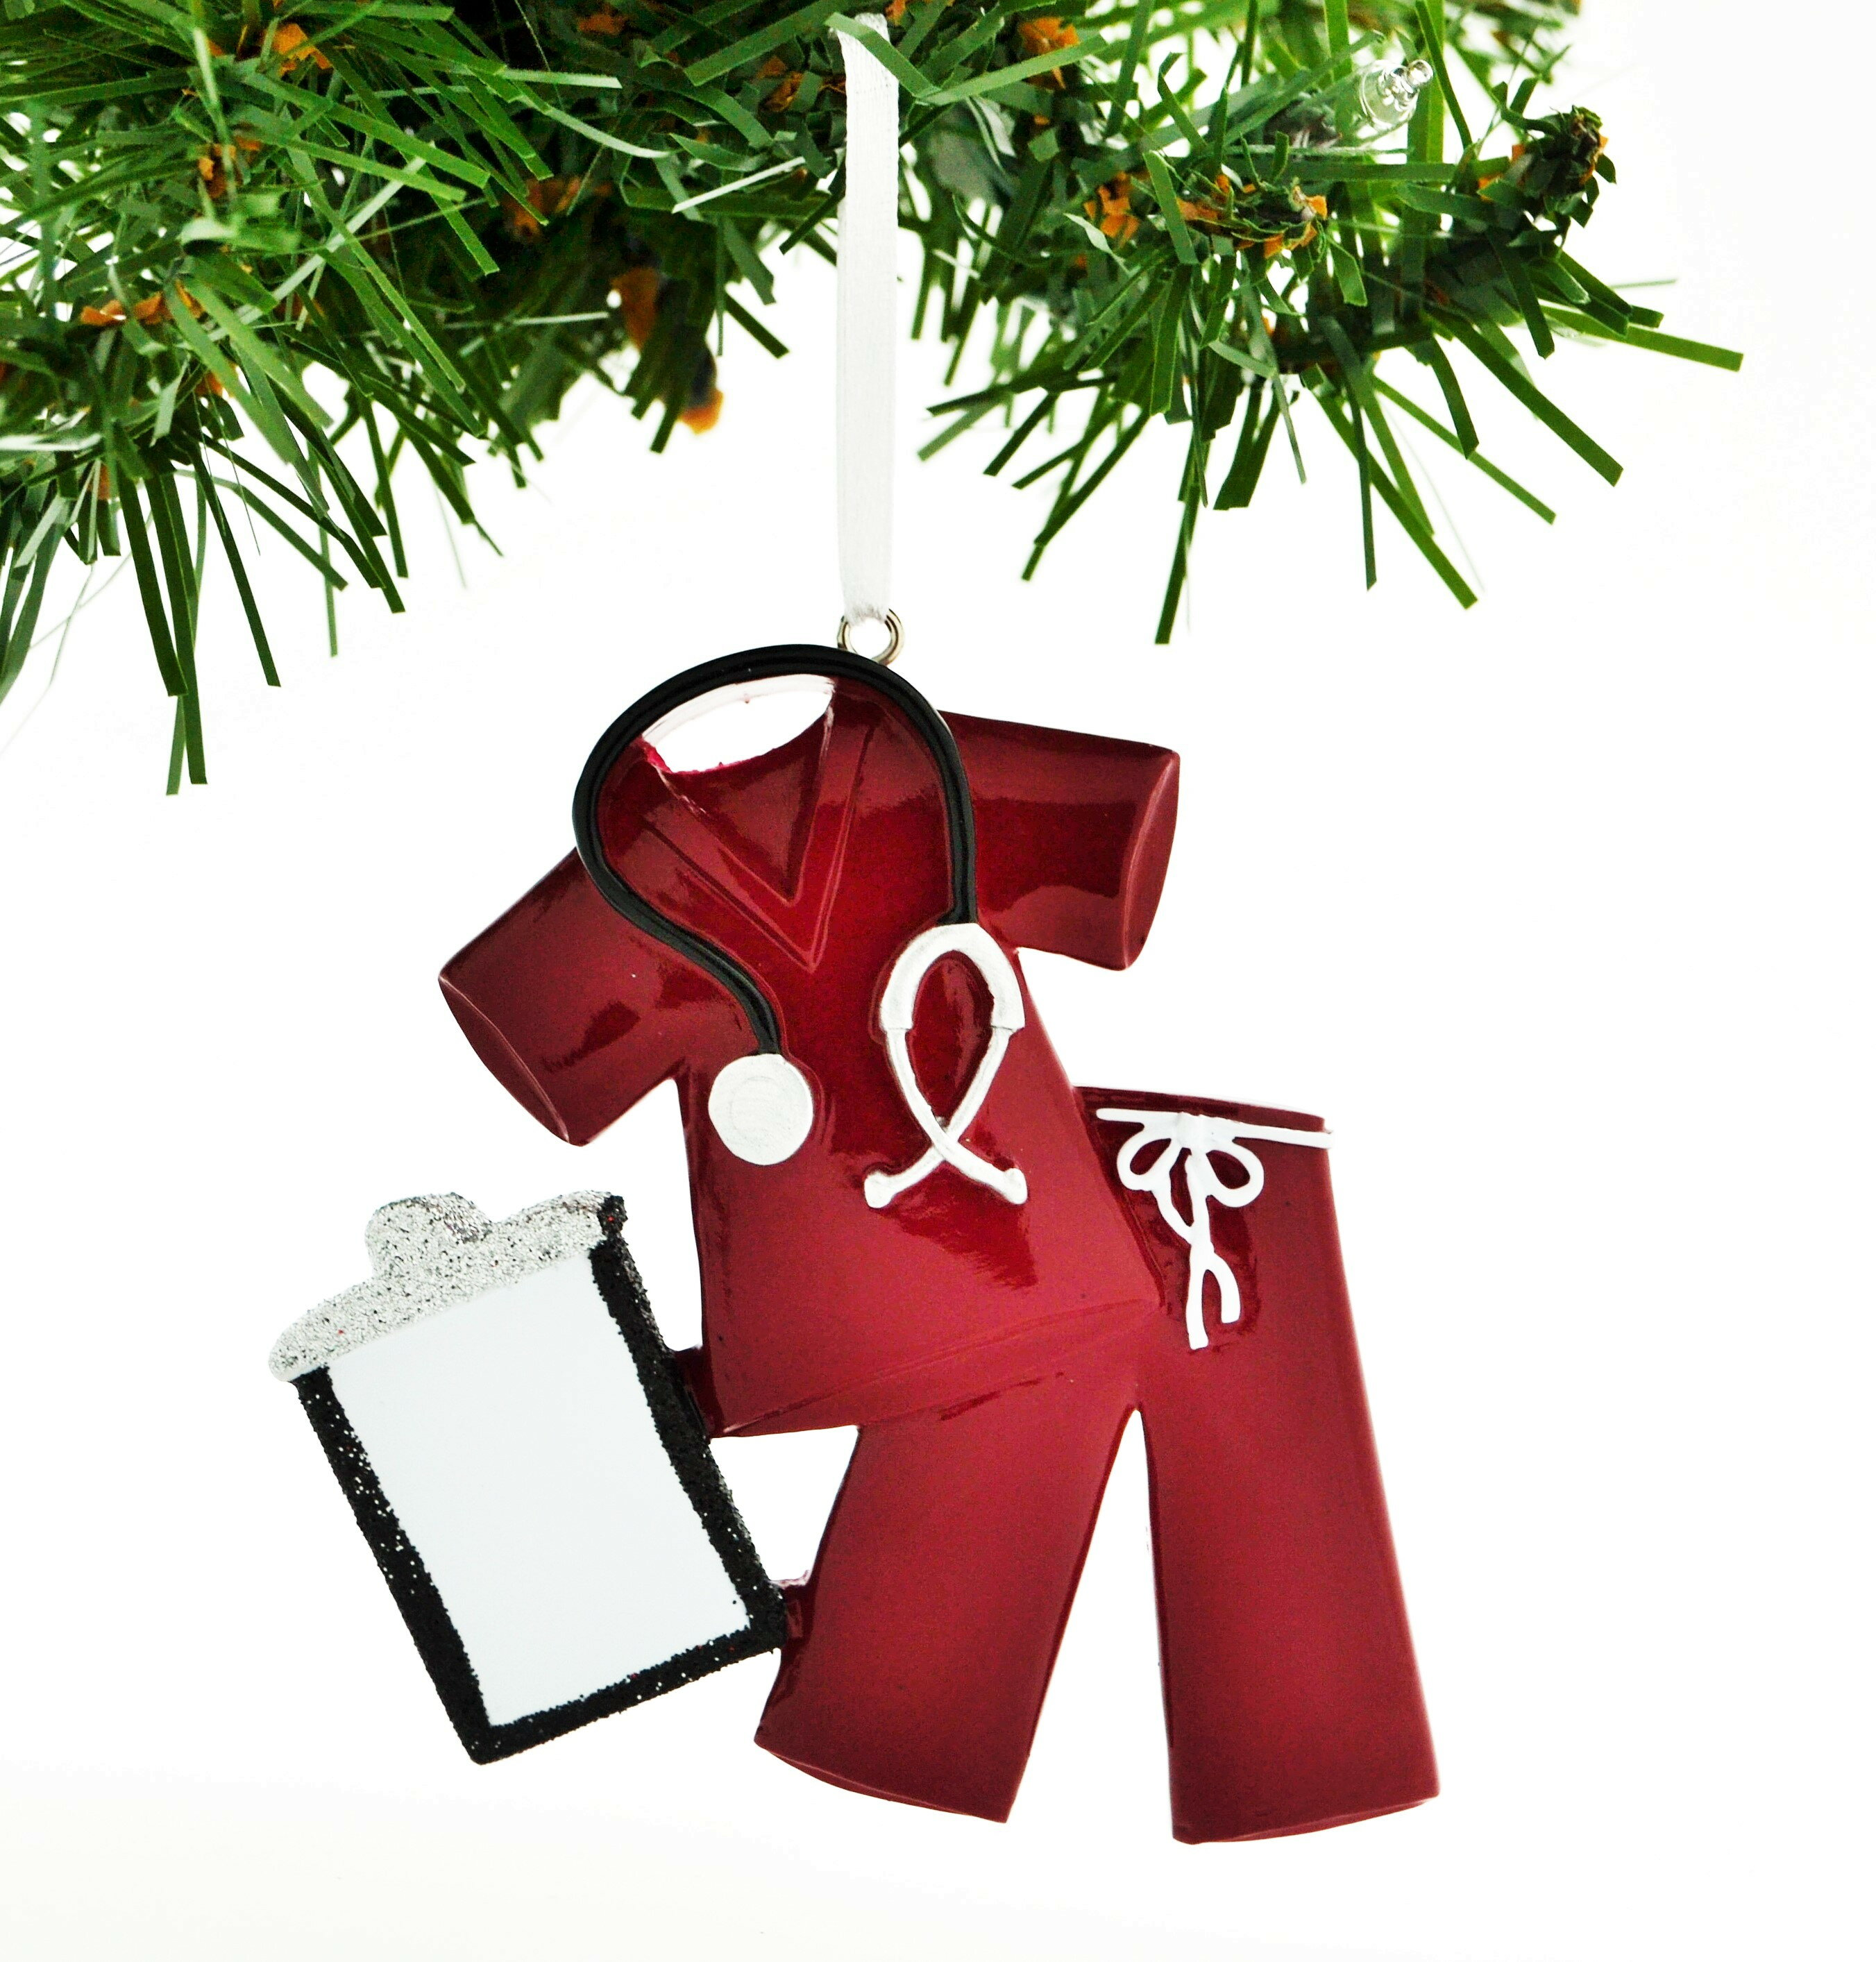 Personalized by Santa Personalized Christmas Ornament Scrubs Doctor ...